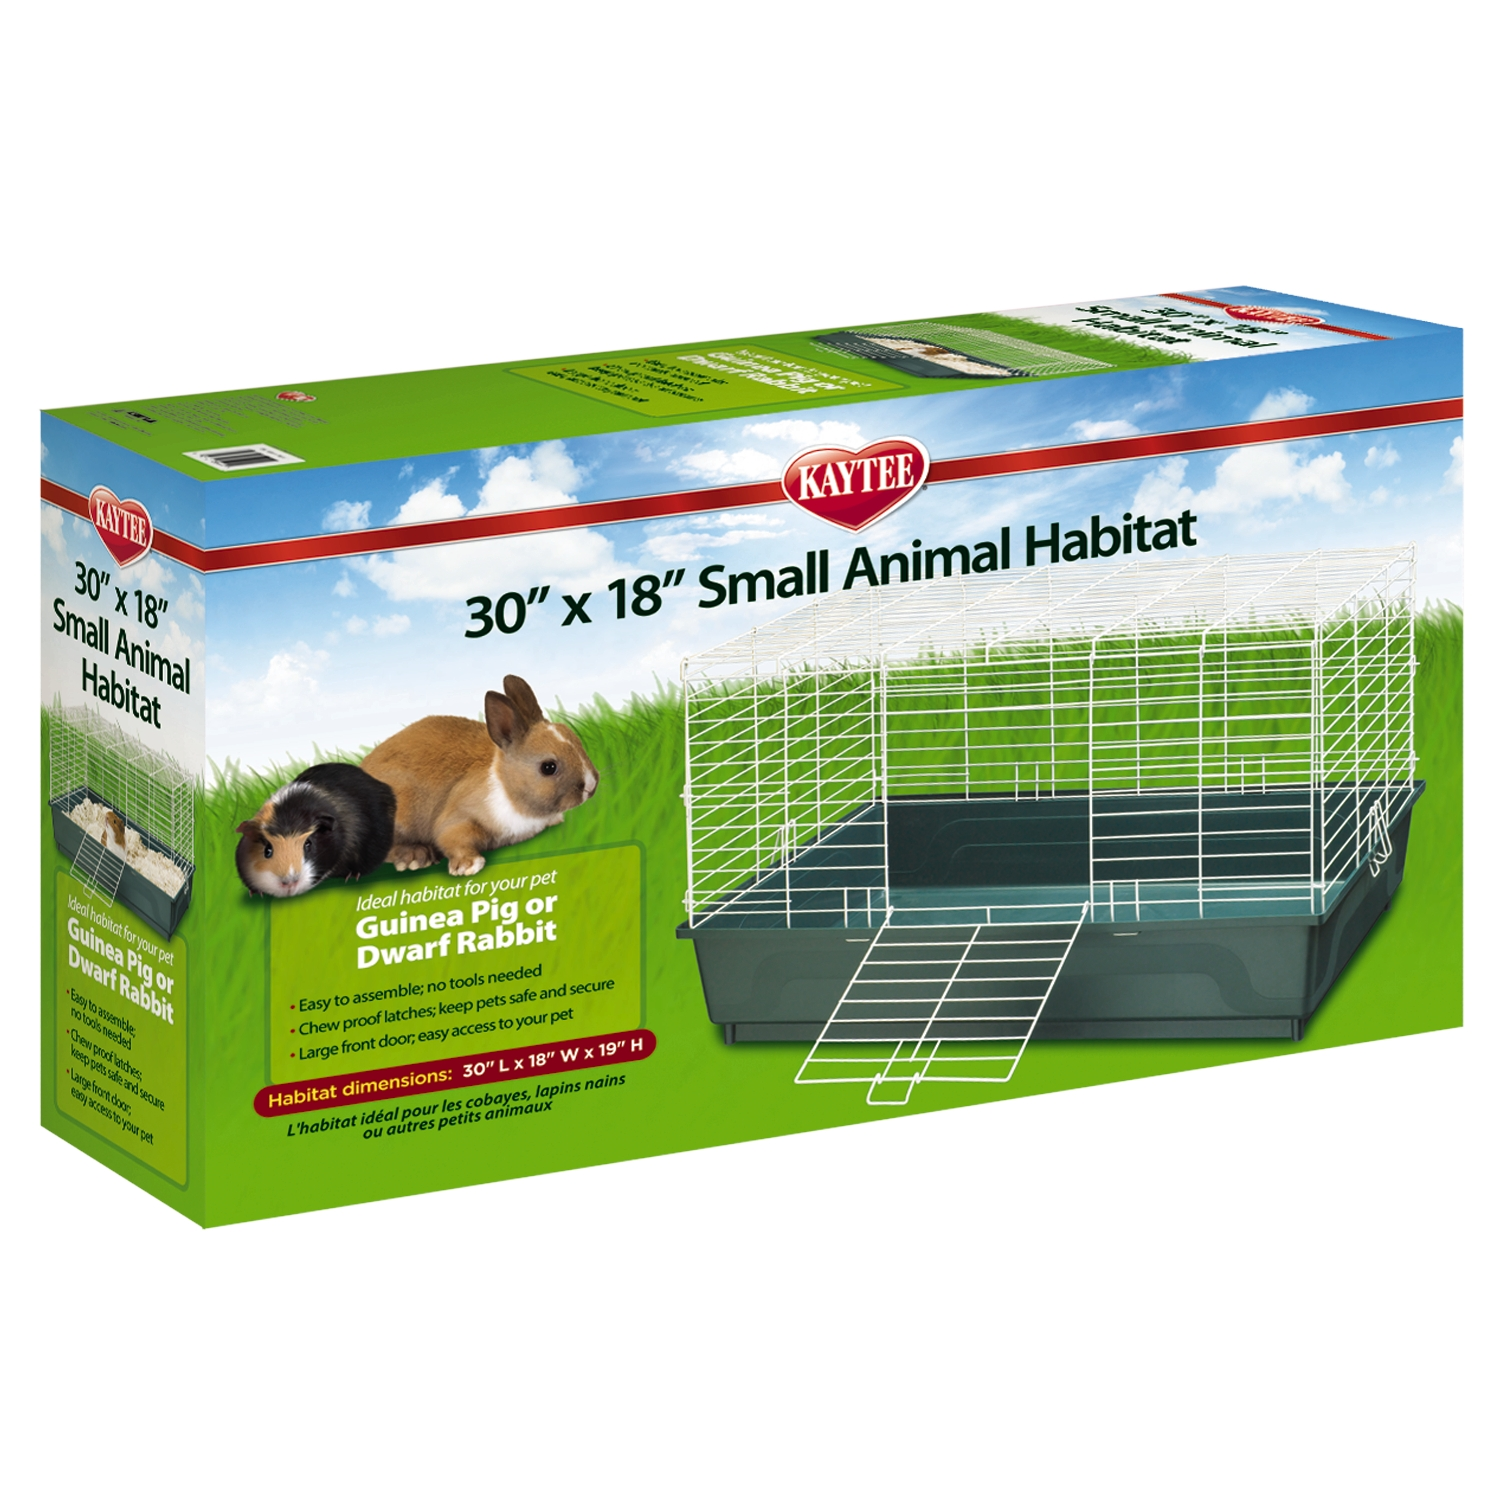 30 x 18 small animal habitat hamster u0026 guinea pig cages small animal cages u0026 habitats kaytee